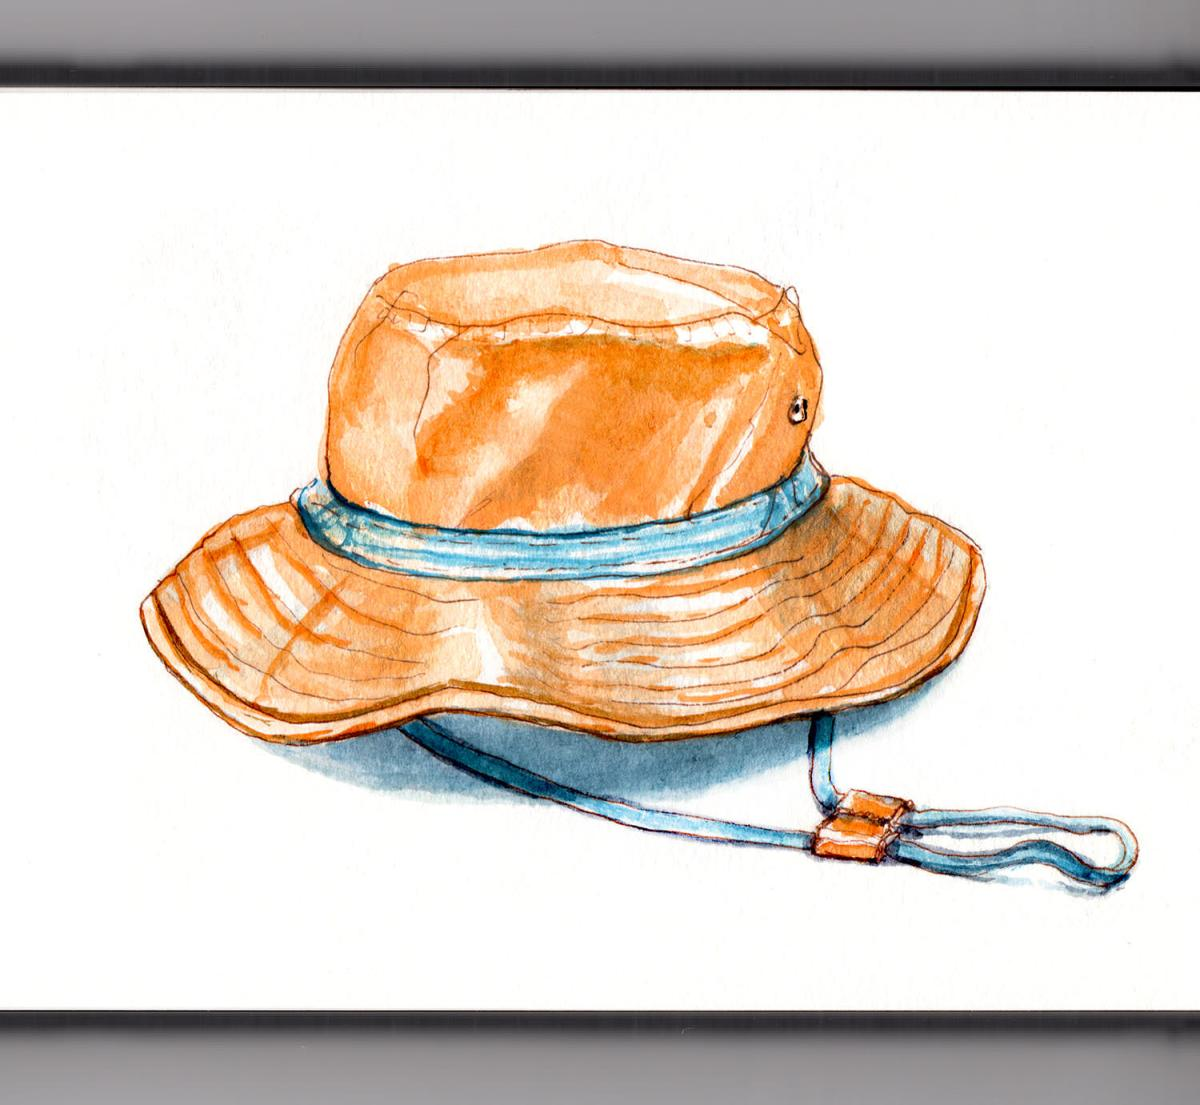 Day 23 - #WorldWatercolorGroup - Wearing Many Hats Orange and Blue Summer Hat - #doodlewash